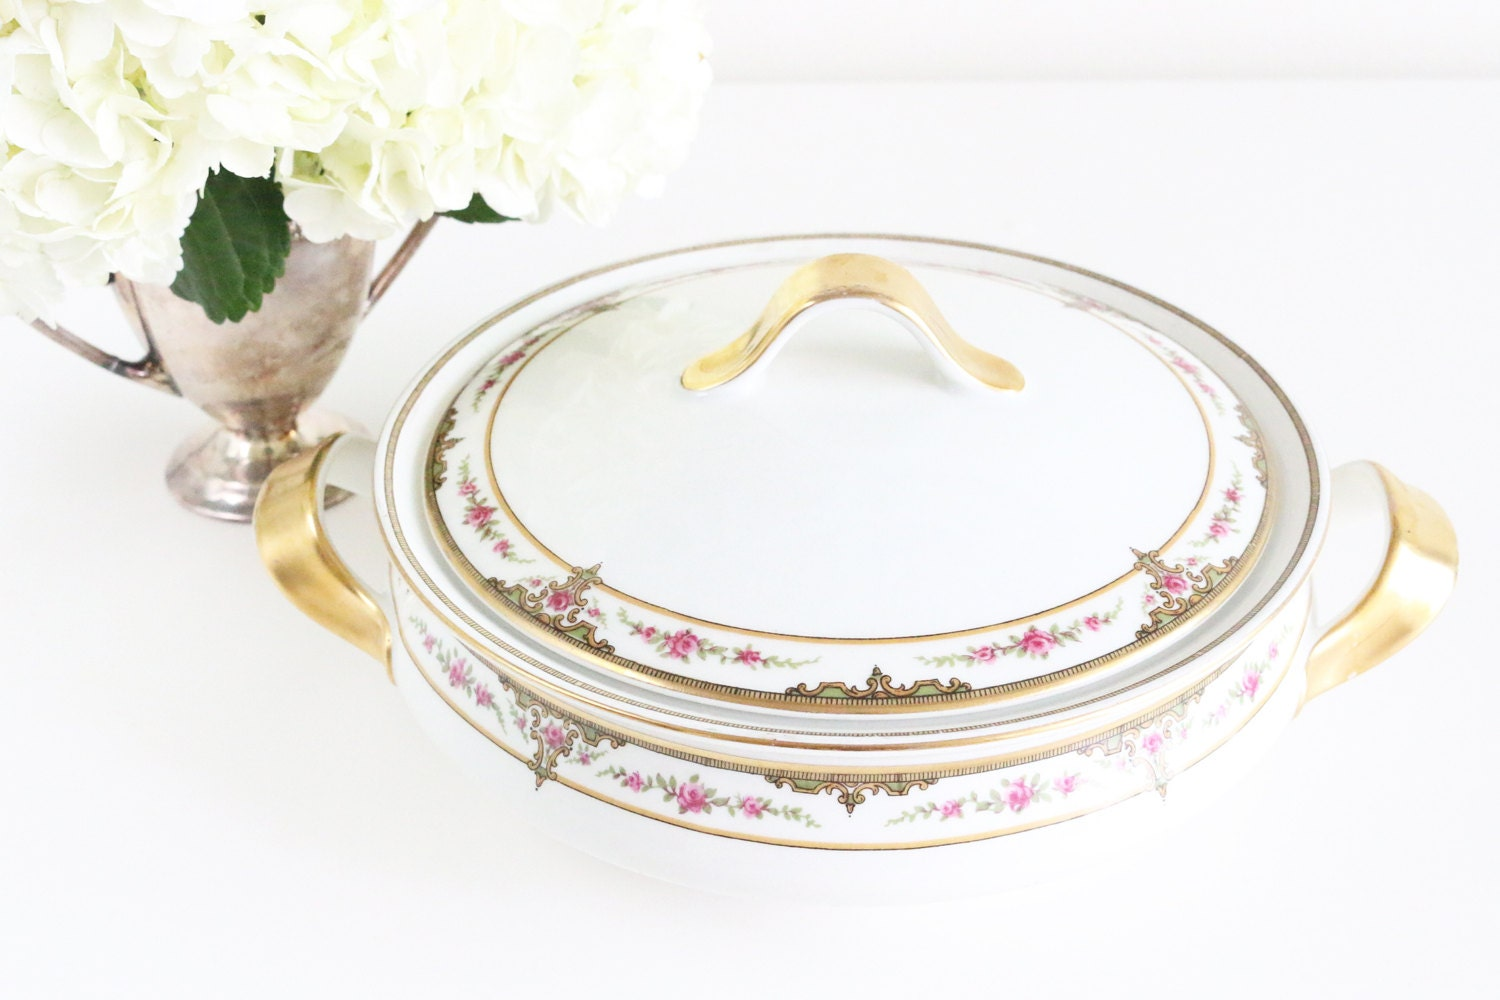 limoges serving bowl with lid vintage serving dish with lid. Black Bedroom Furniture Sets. Home Design Ideas